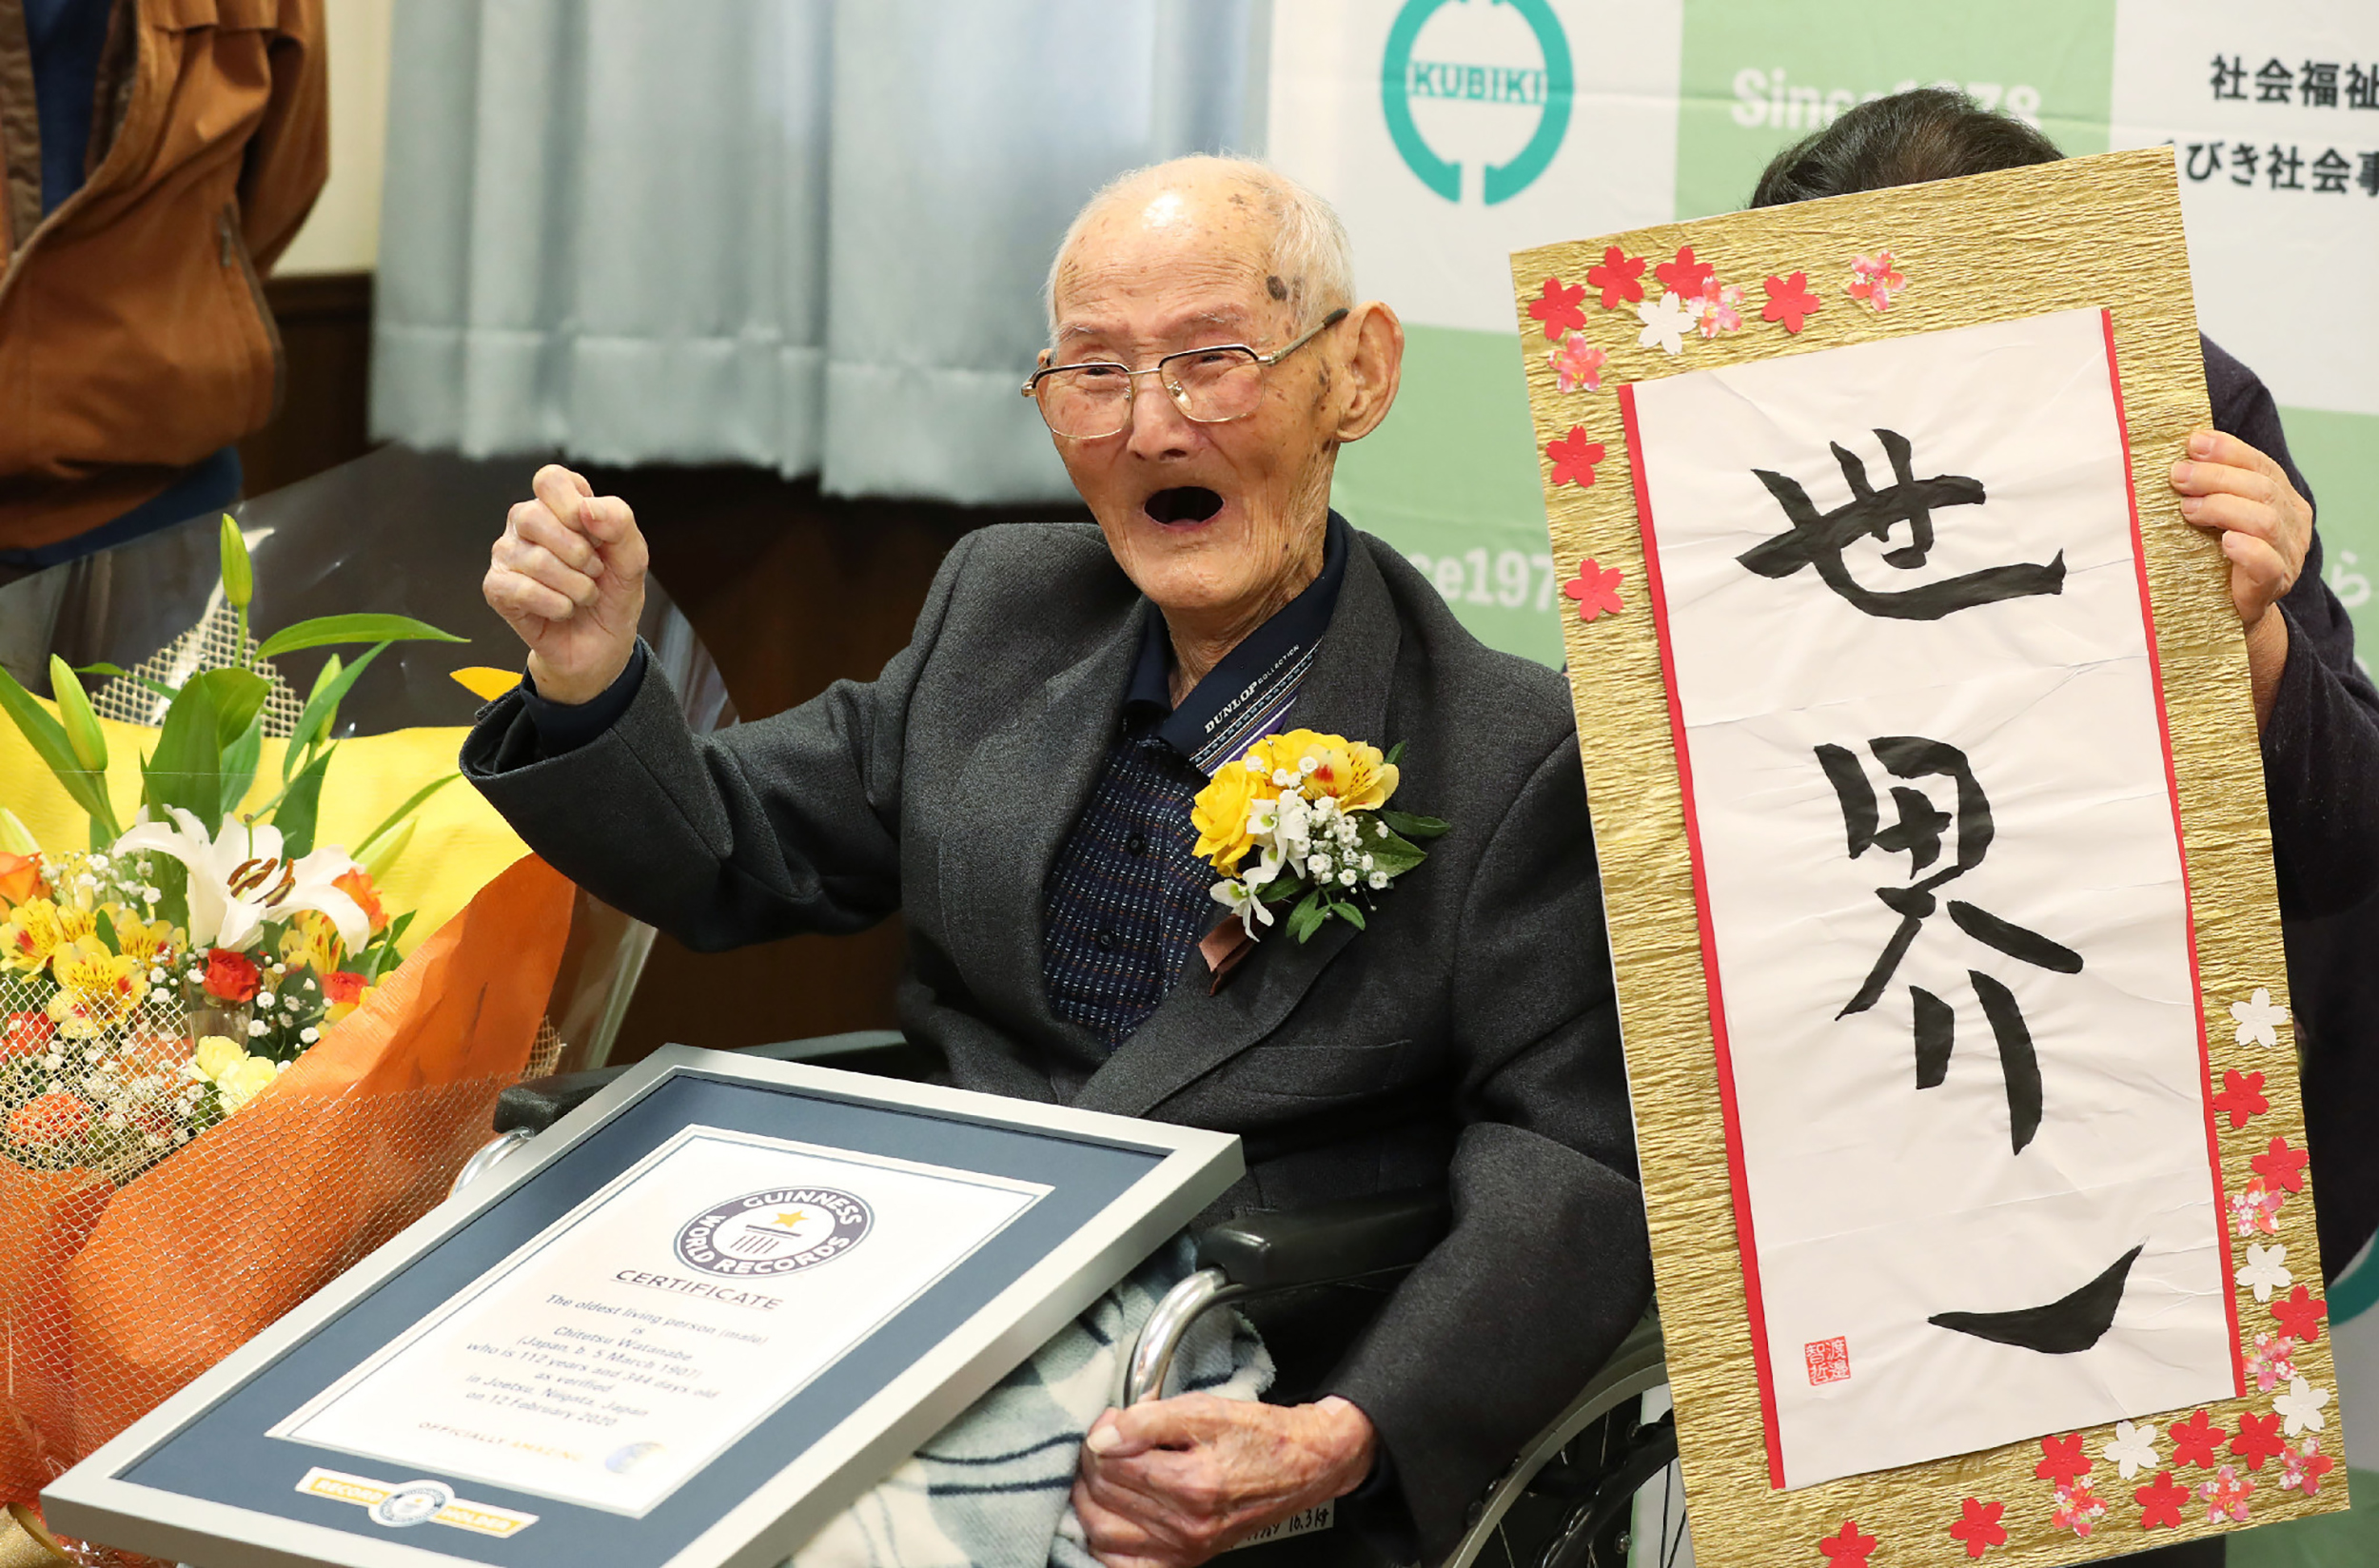 Chitetsu Watanabe poses next to calligraphy reading in Japanese 'World Number One' after he was awarded as the world's oldest living male in Joetsu, Niigata.